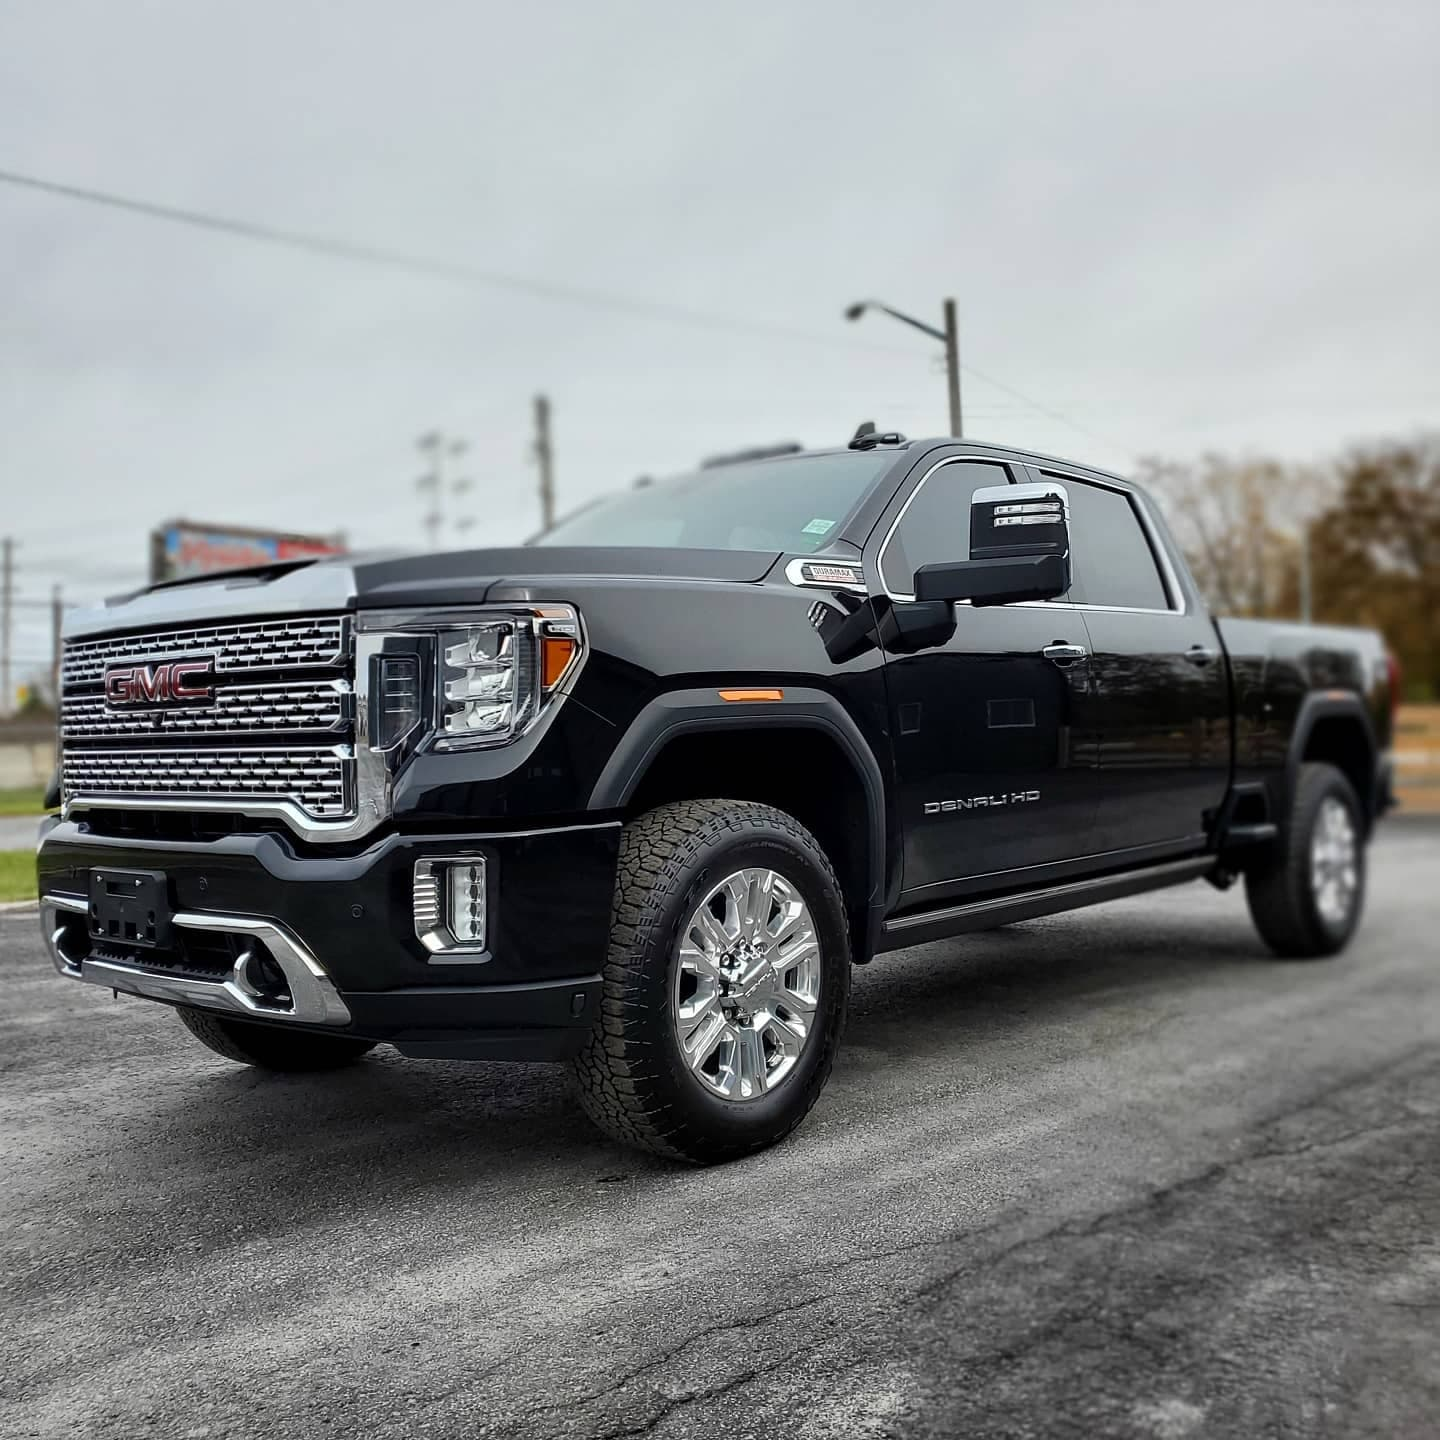 Black GMC truck at Autobuf fine car detailing and restyling in Kingston, Ontario